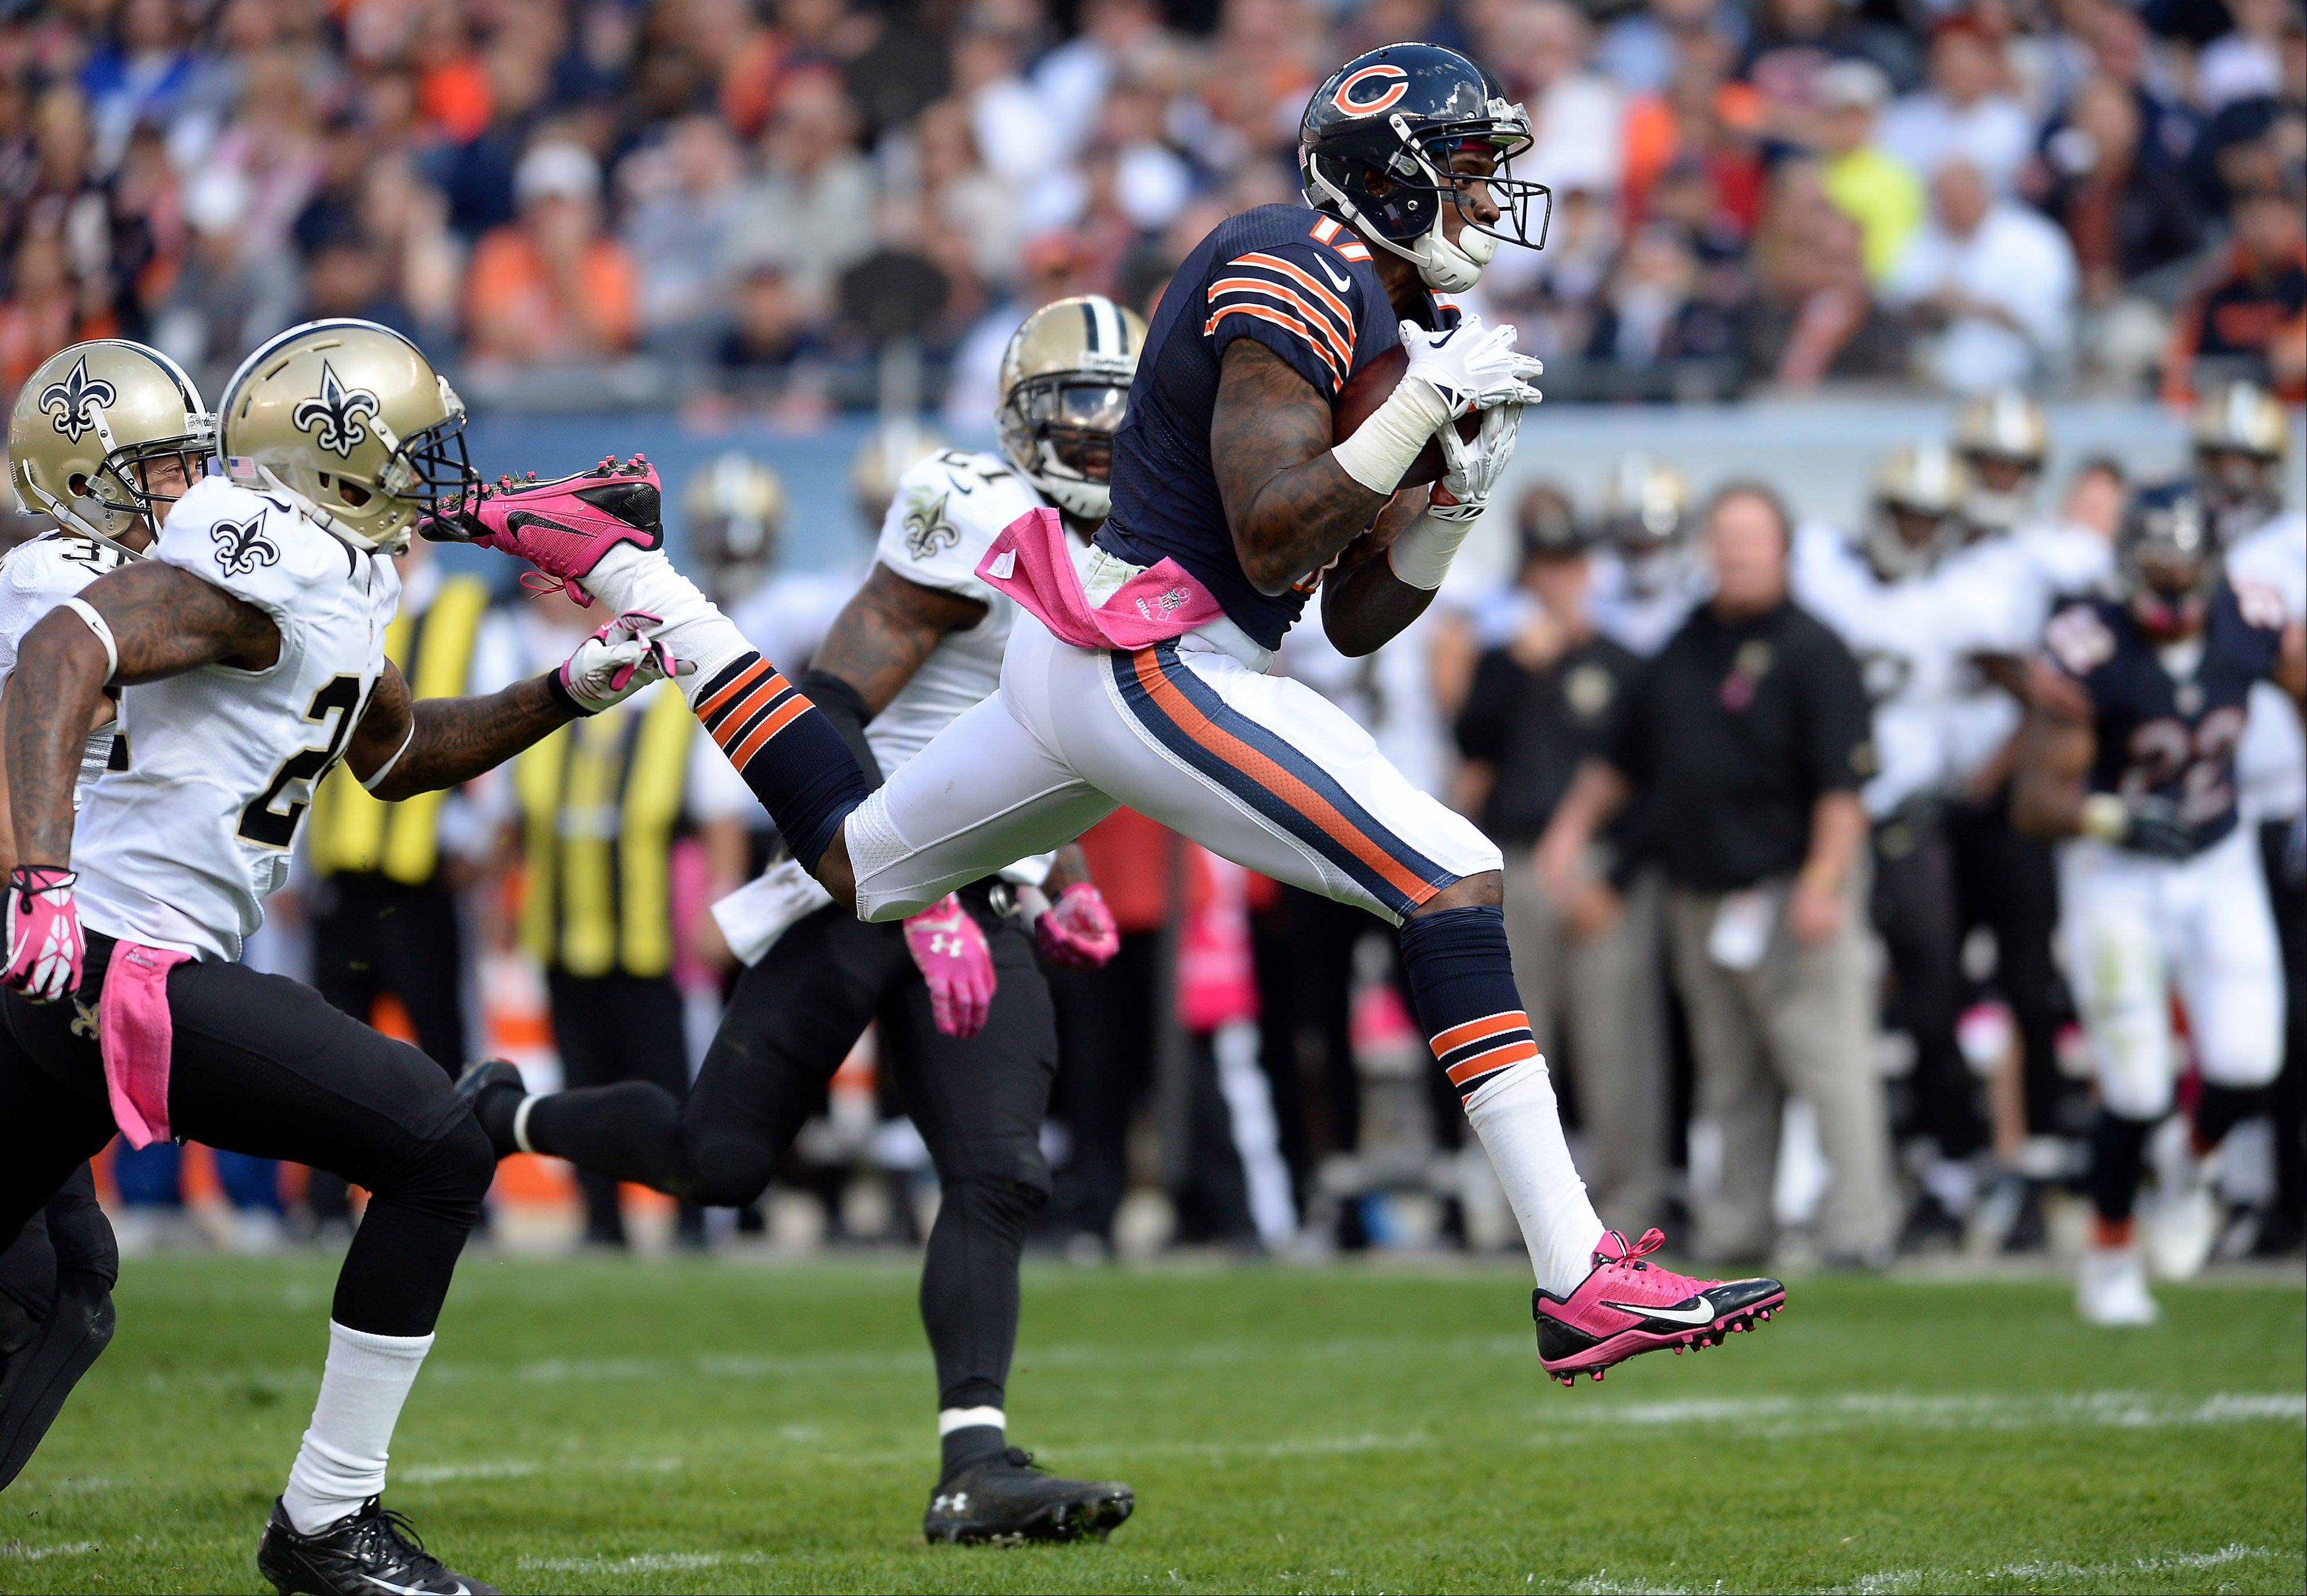 Bears Alshon Jeffery makes a catch from Jay Cutler to set up a touchdown in the second quarter at Soldier Field in Chicago.